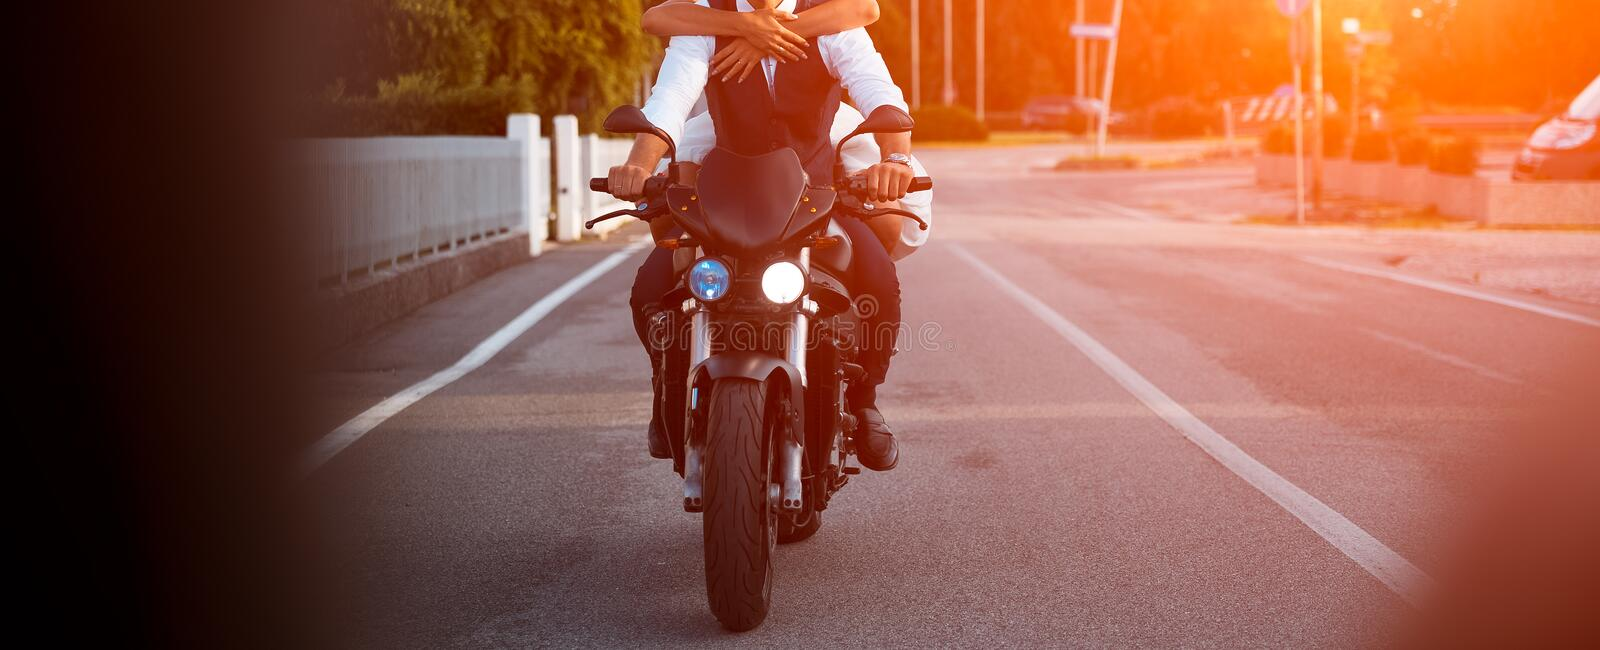 Young couple ridind motorcycle on city road at sunset stock image